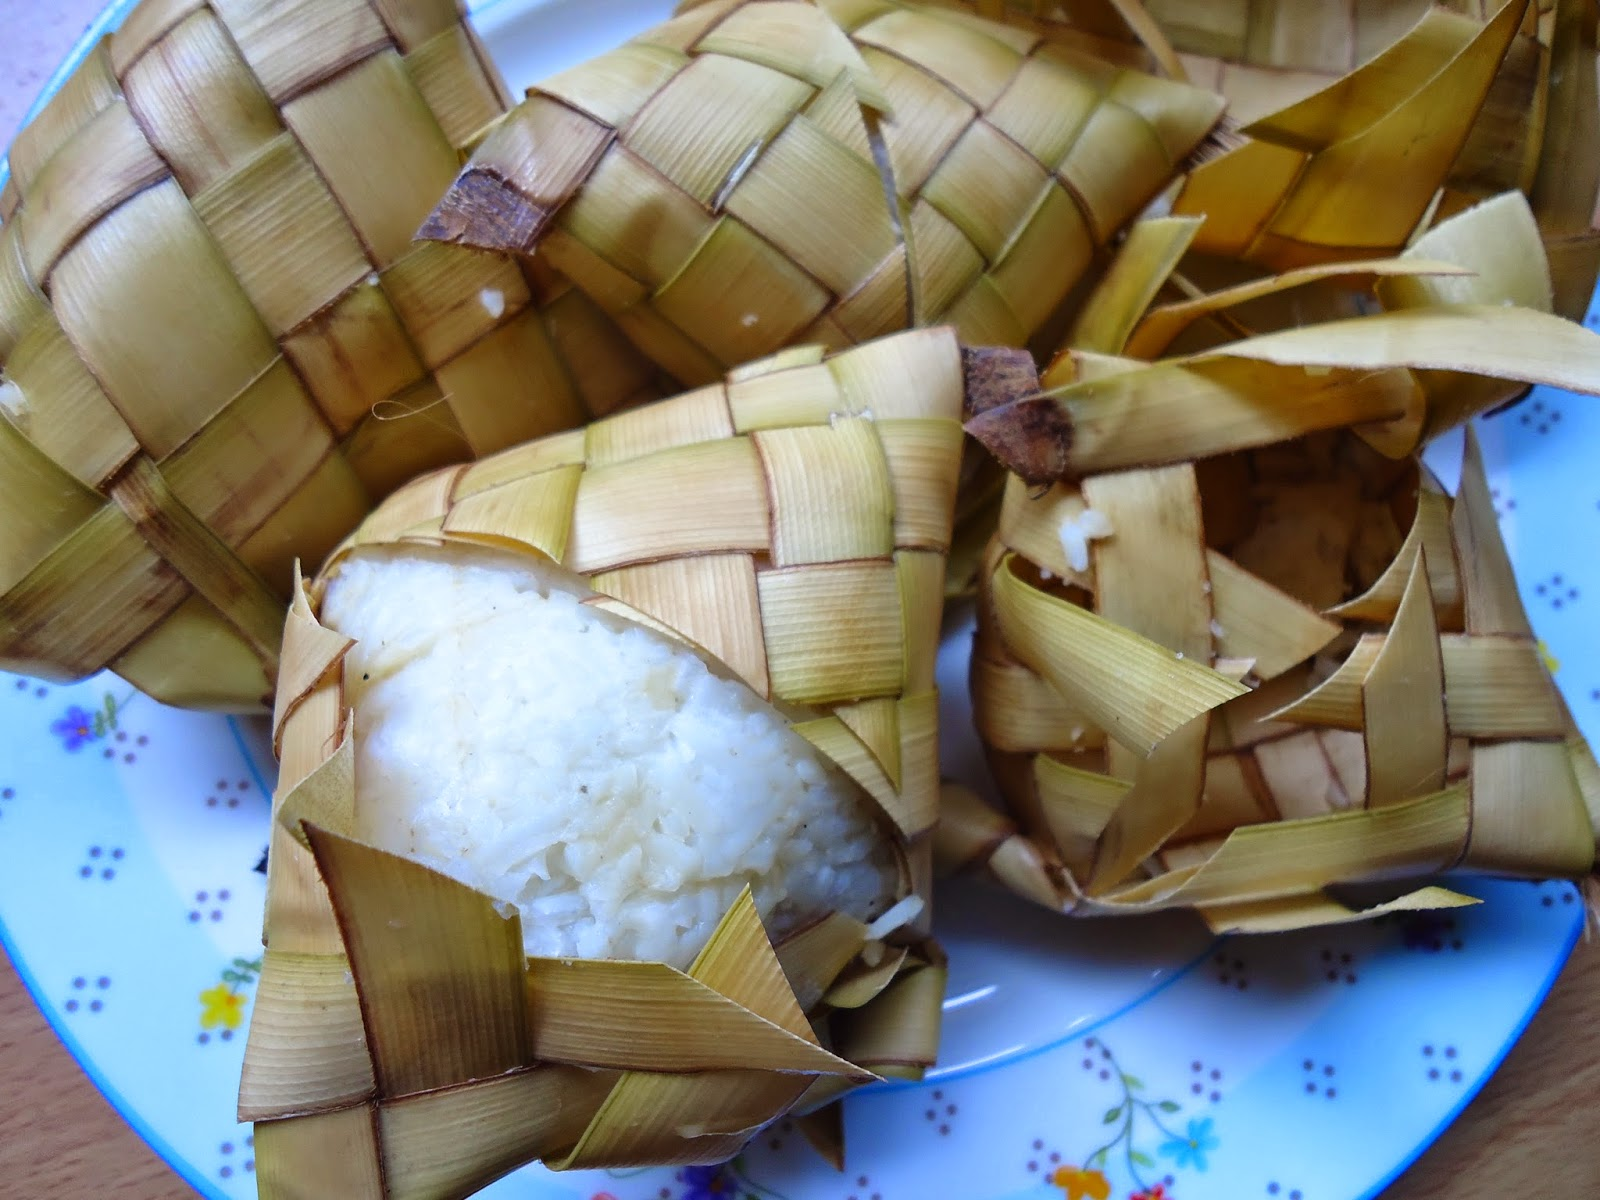 puso or rice cooked in a pouch made of woven coconut leaves